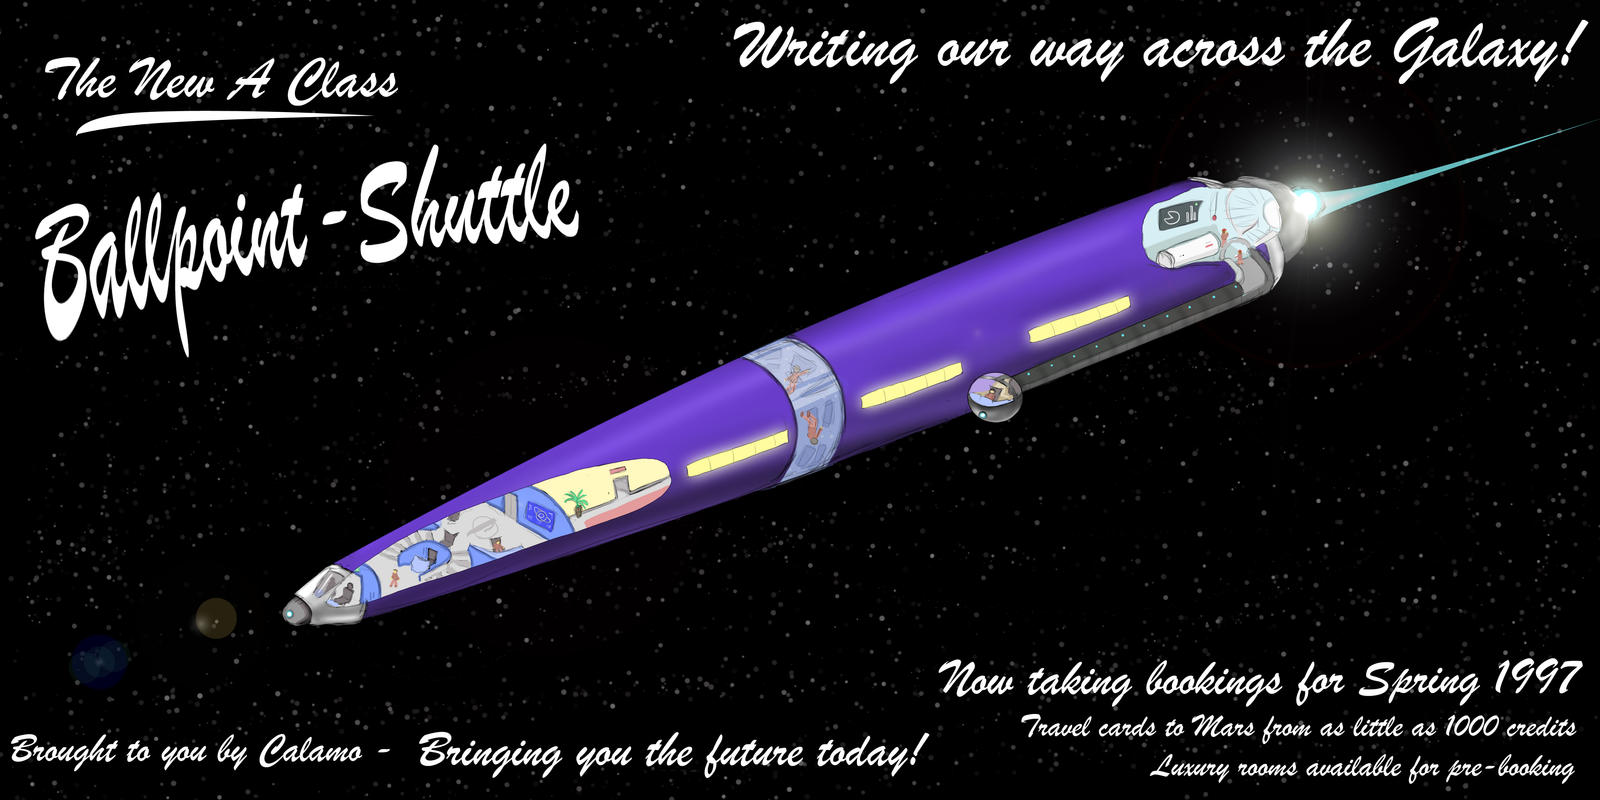 Contest entery - The Ballpoint Shuttle by Morgan-the-Rabbit